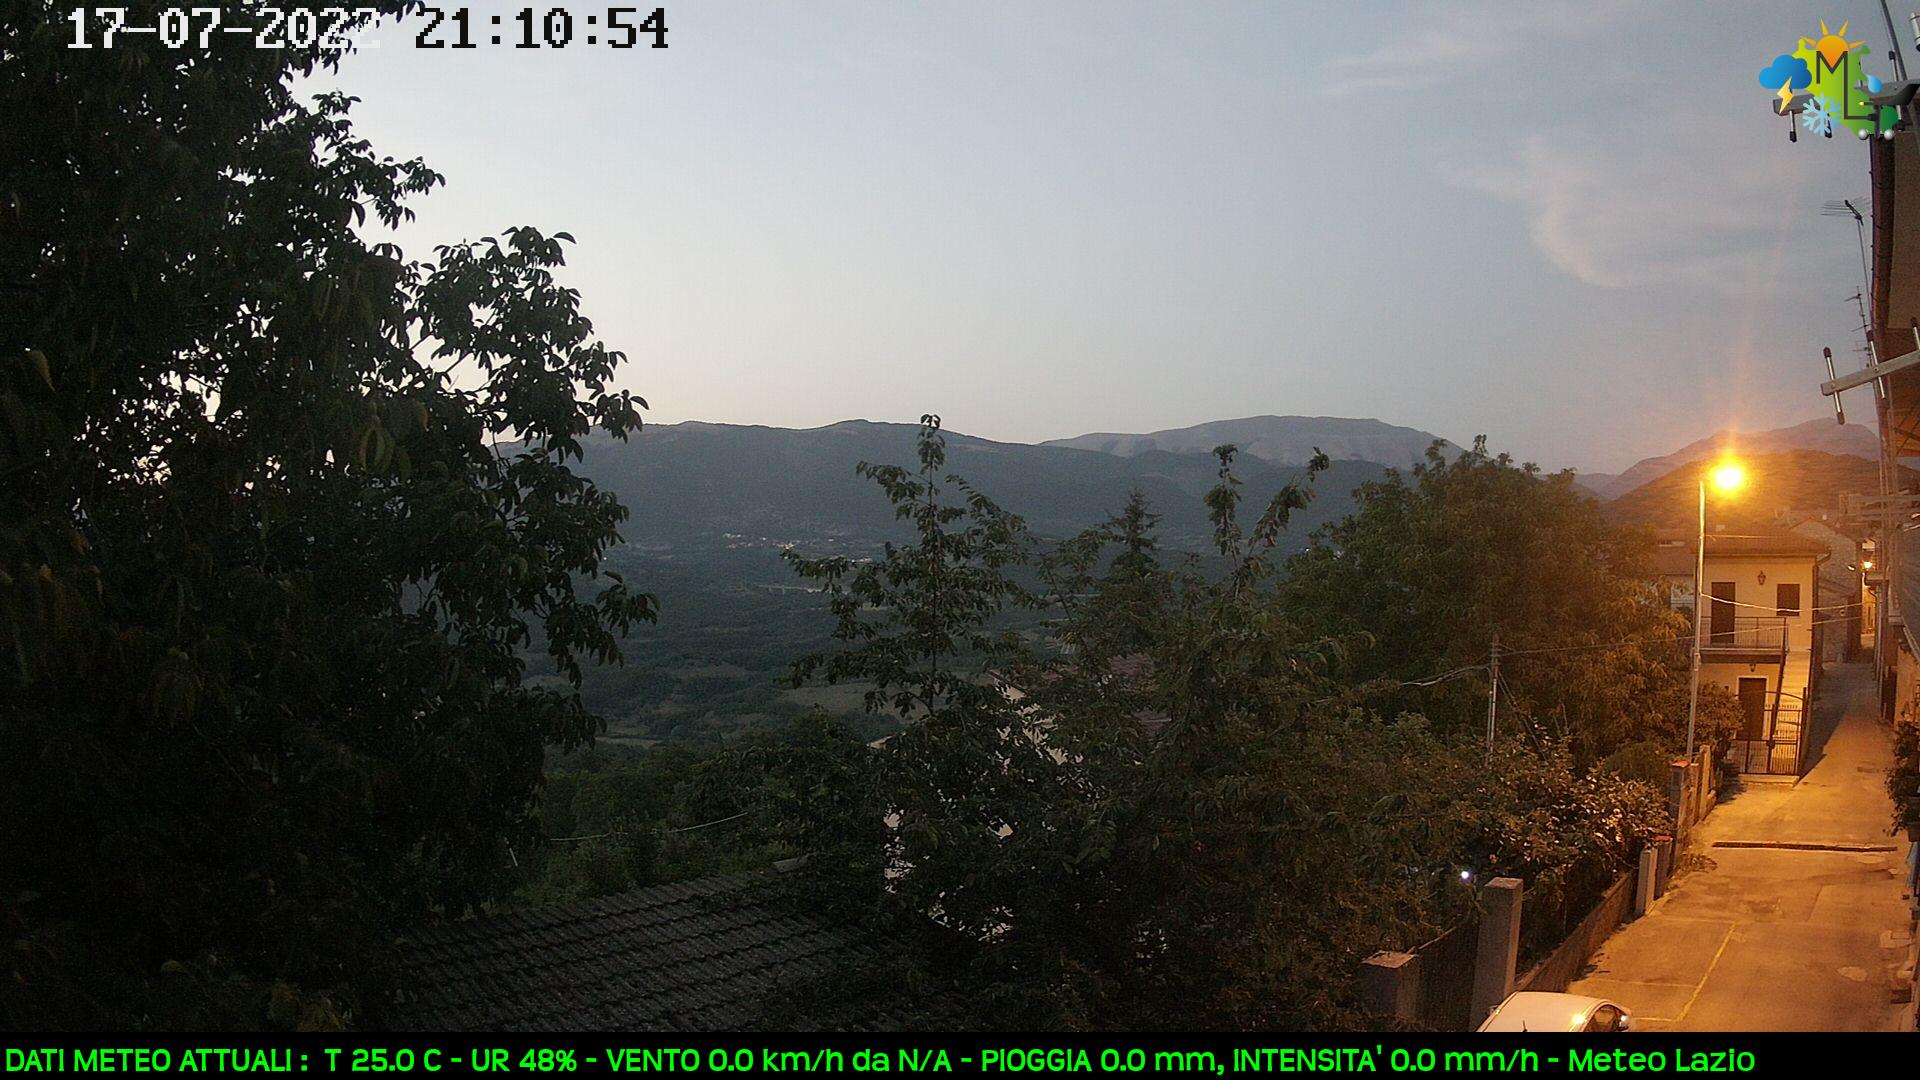 Webcam di Nesce (RI)